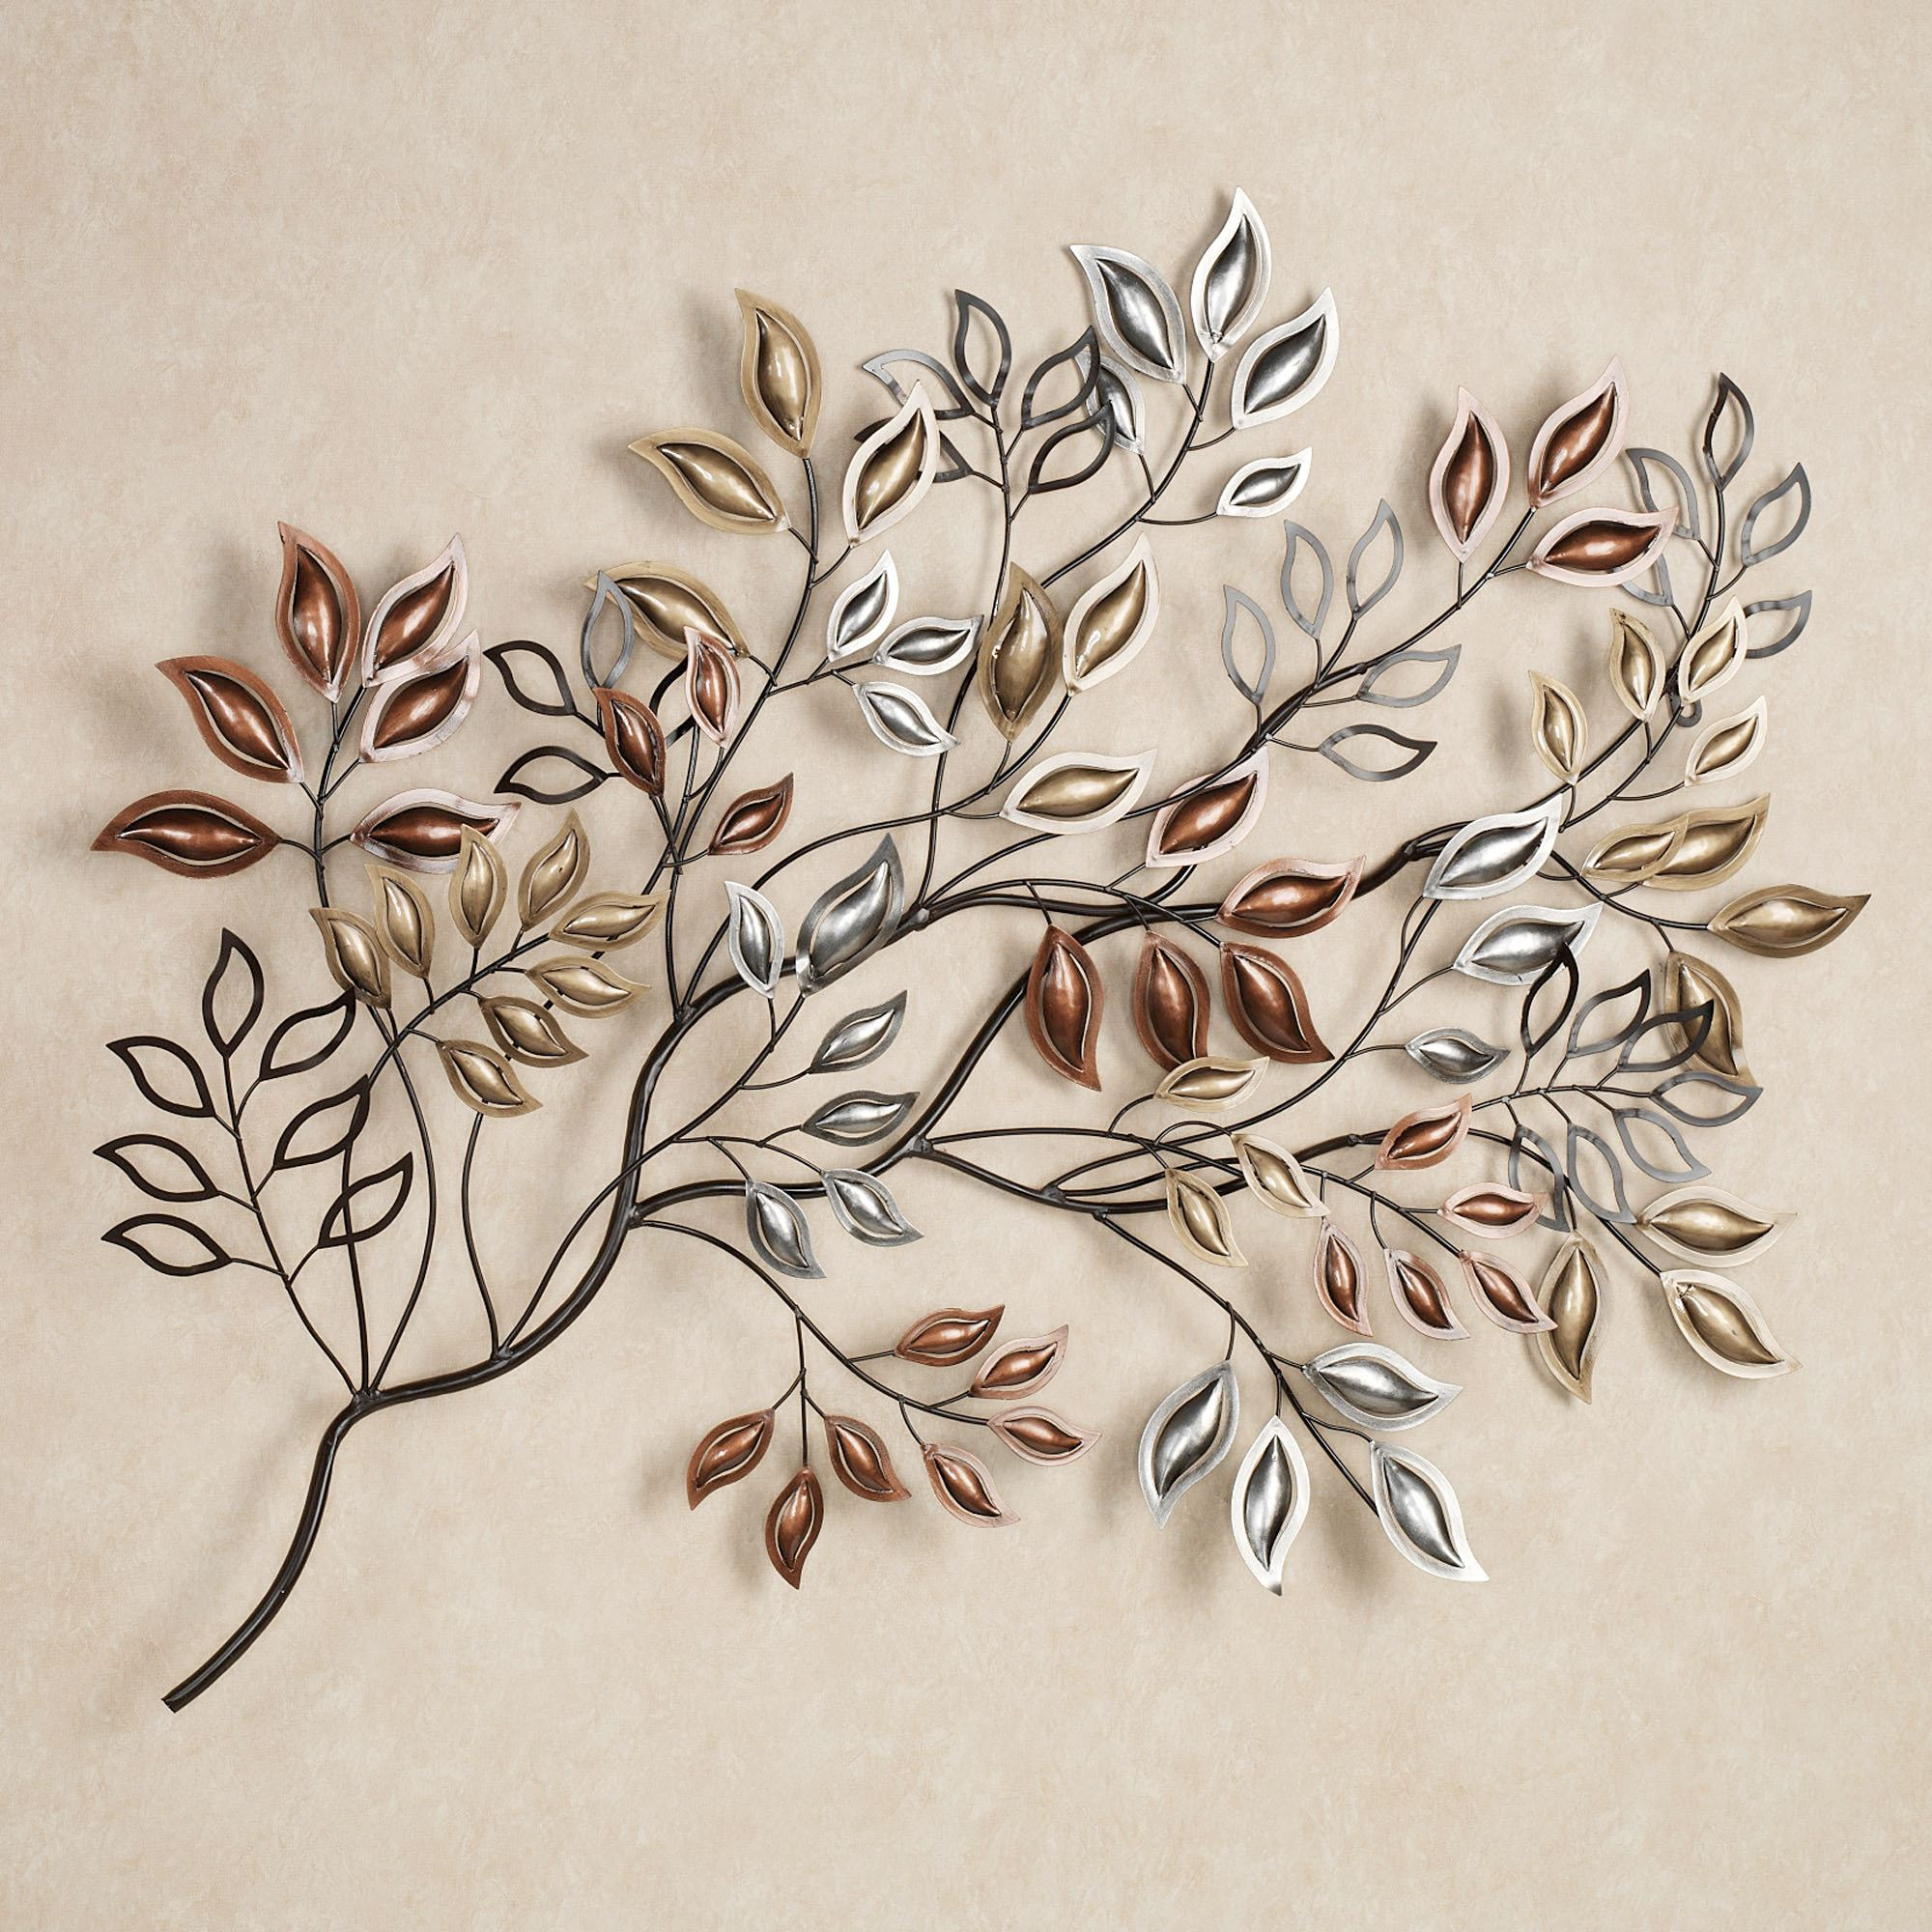 Leaves Metal Sculpture Wall Decor In Latest Golden Sunrise Leaves Metal Wall Sculpture (View 9 of 20)